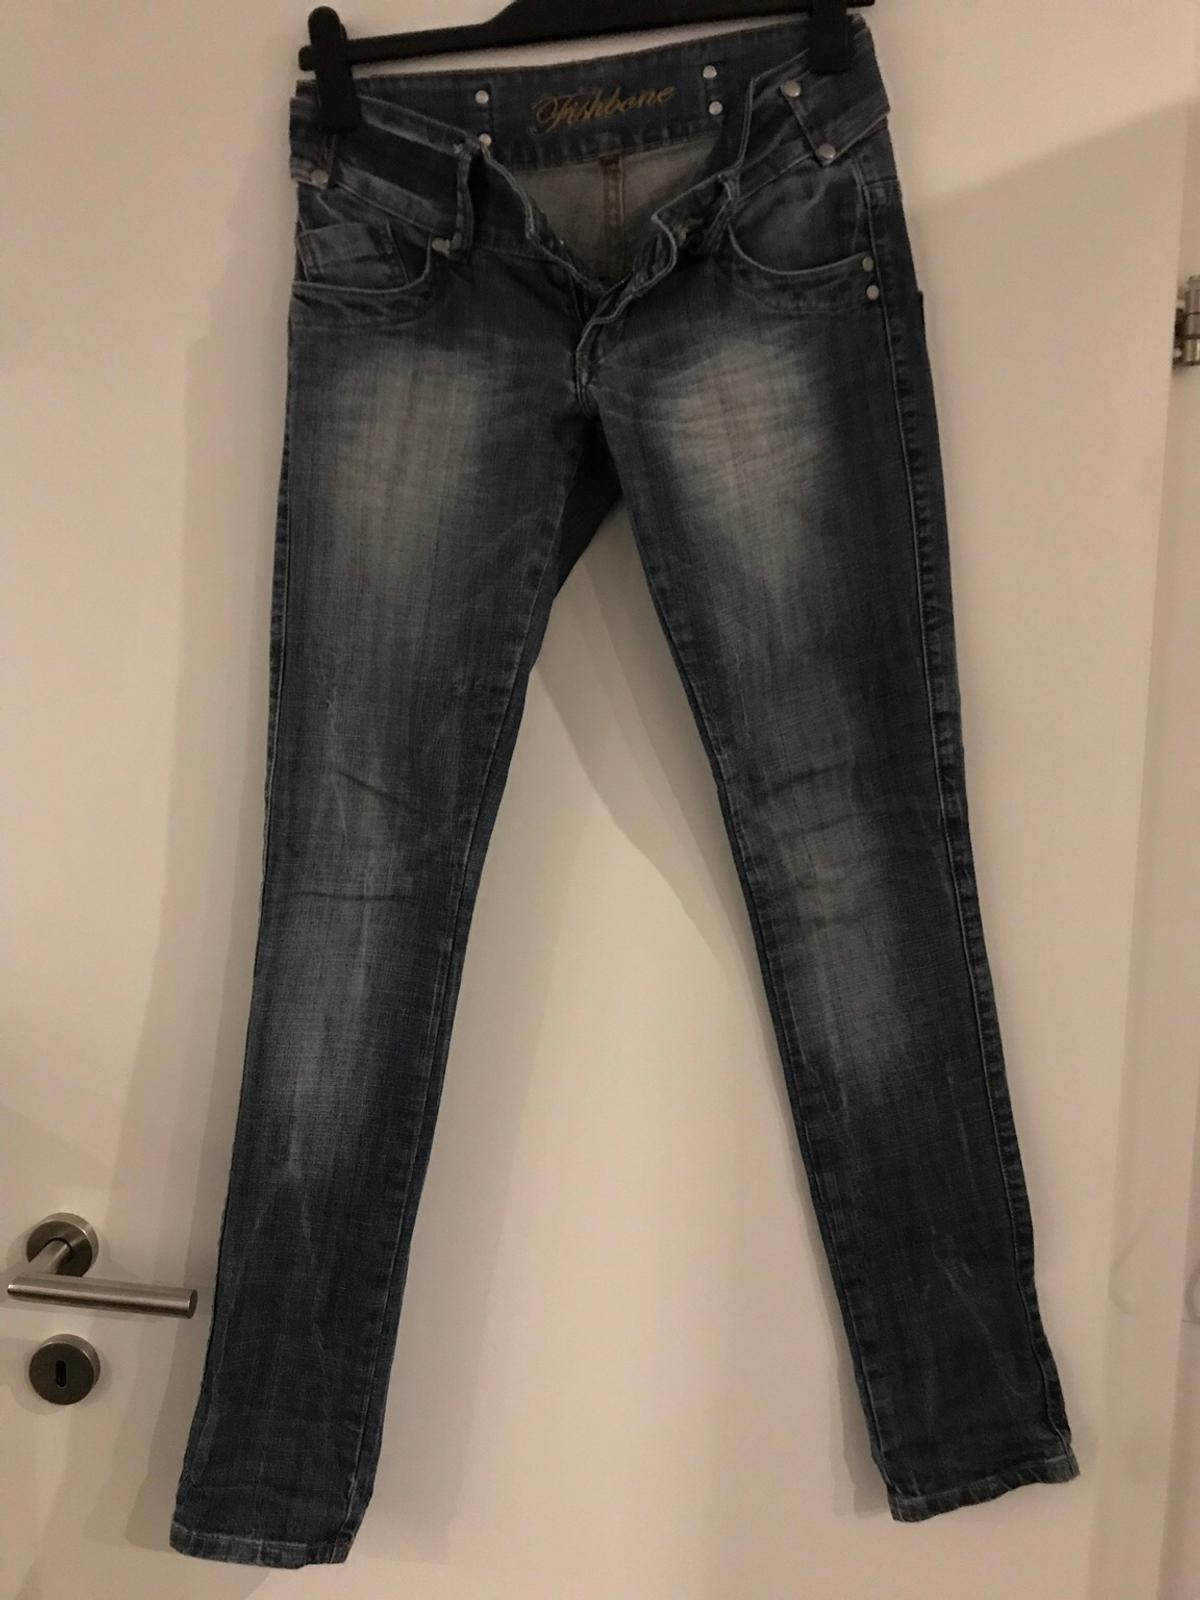 kinder klar in Sicht auf Lager Fishbone Jeans New Yorker in 6973 Fußach for free for sale ...